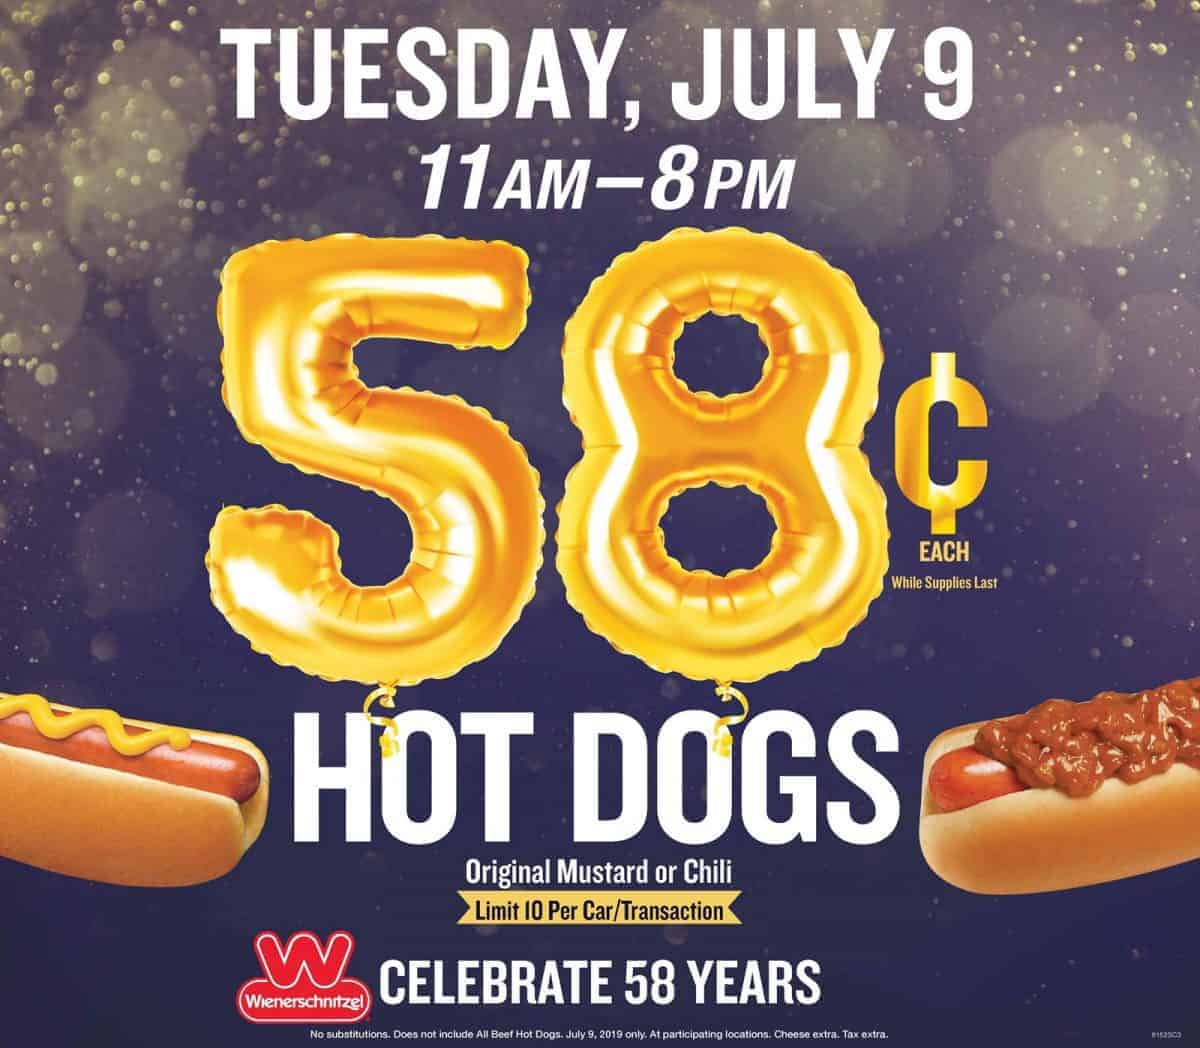 photograph regarding Wienerschnitzel Printable Coupons titled Wienerschnitzel: Just take chili or mustard pet for 58 cents